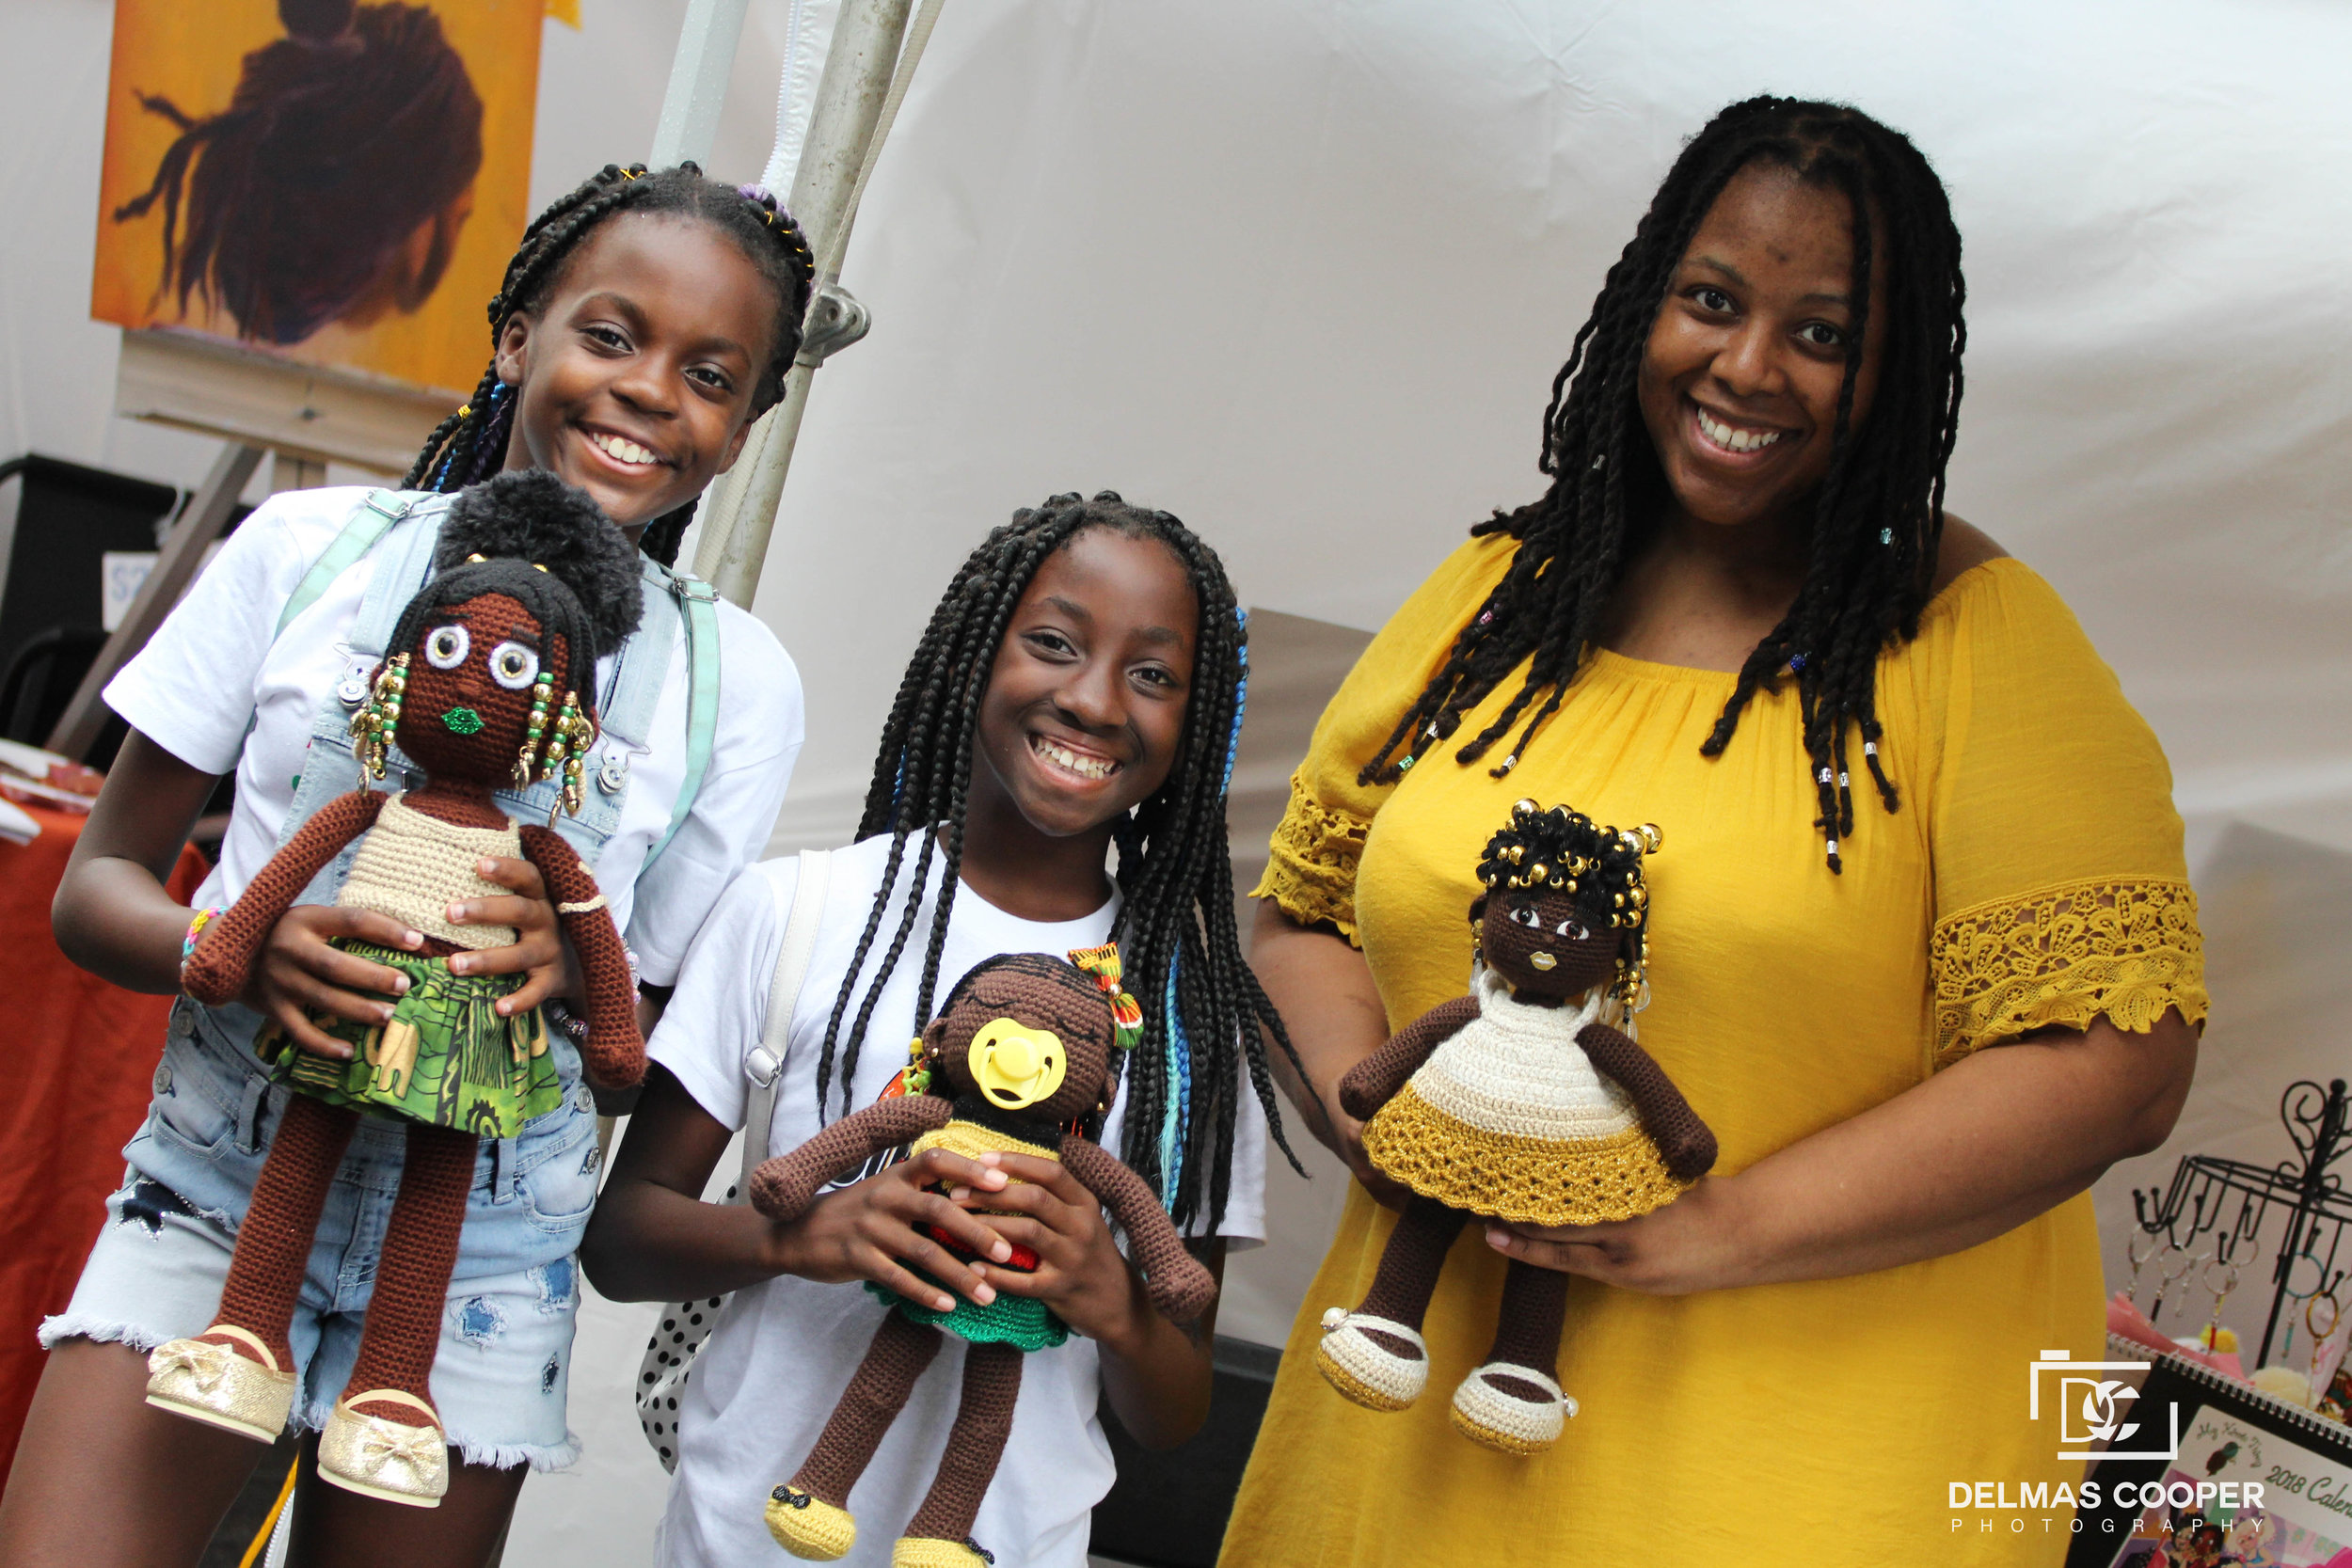 dollmaker Aniqua Wilkerson and two girls holding her handmade dolls